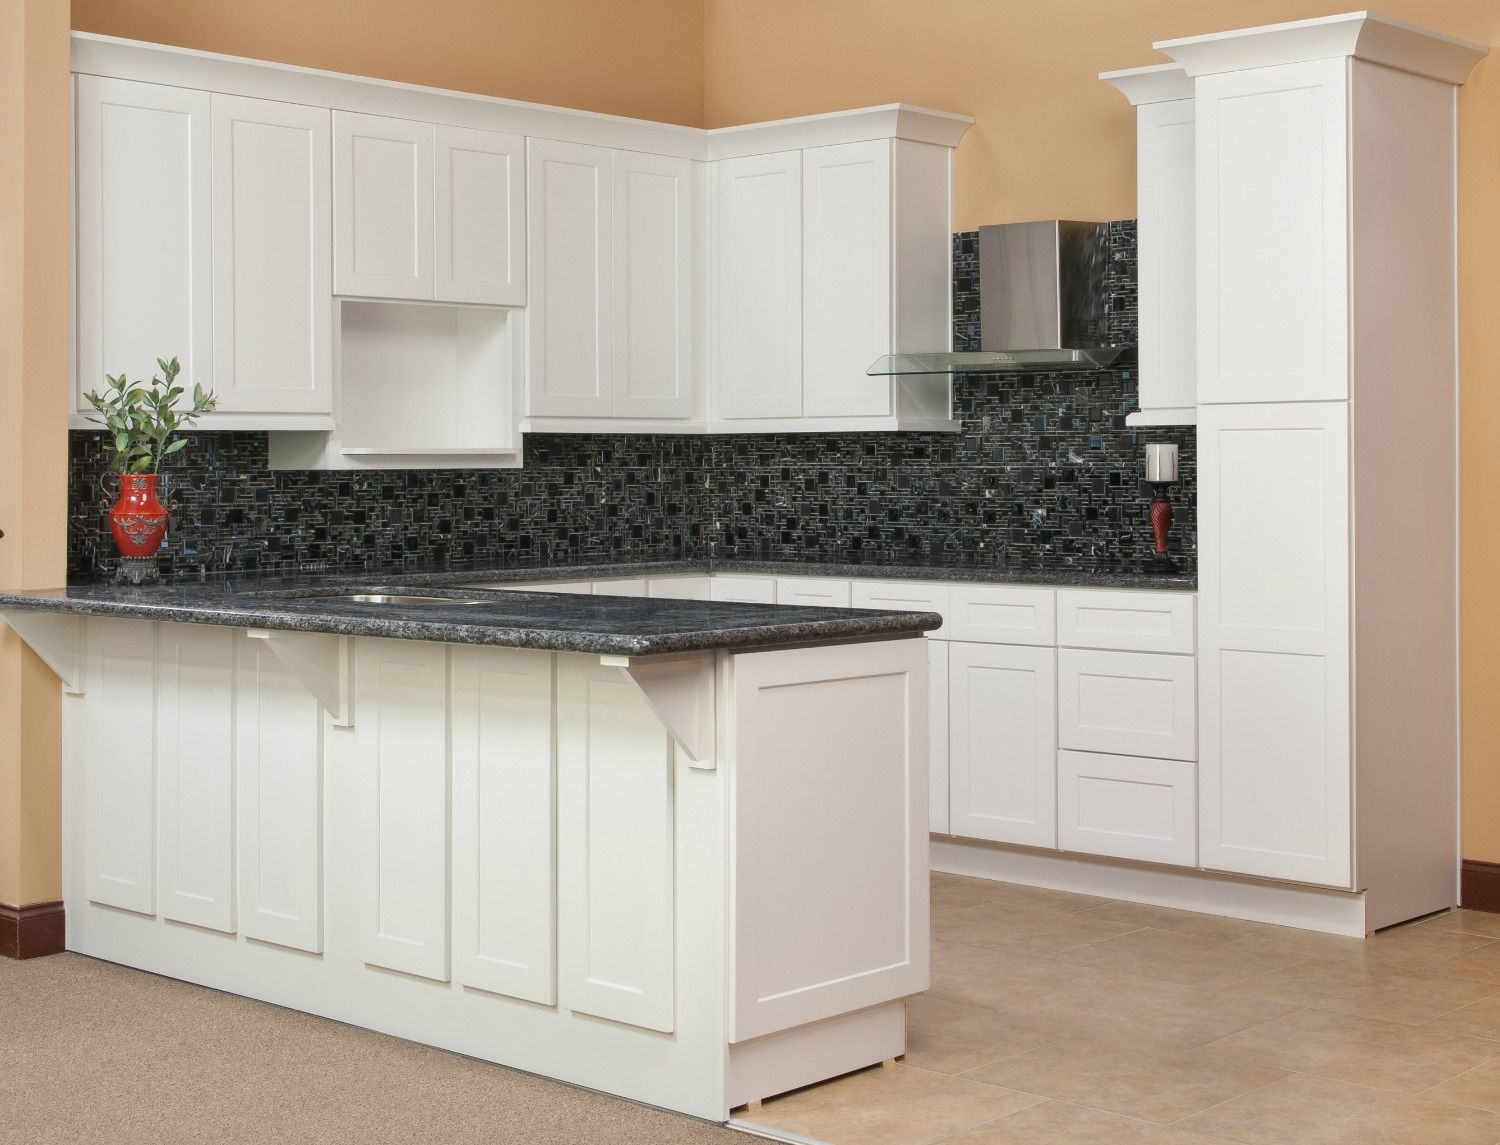 Classic espresso ready to assemble kitchen cabinets rta ship -  Kitchen Of The Day Brilliant White Shaker White Shaker Kitchen Cabinetsrta